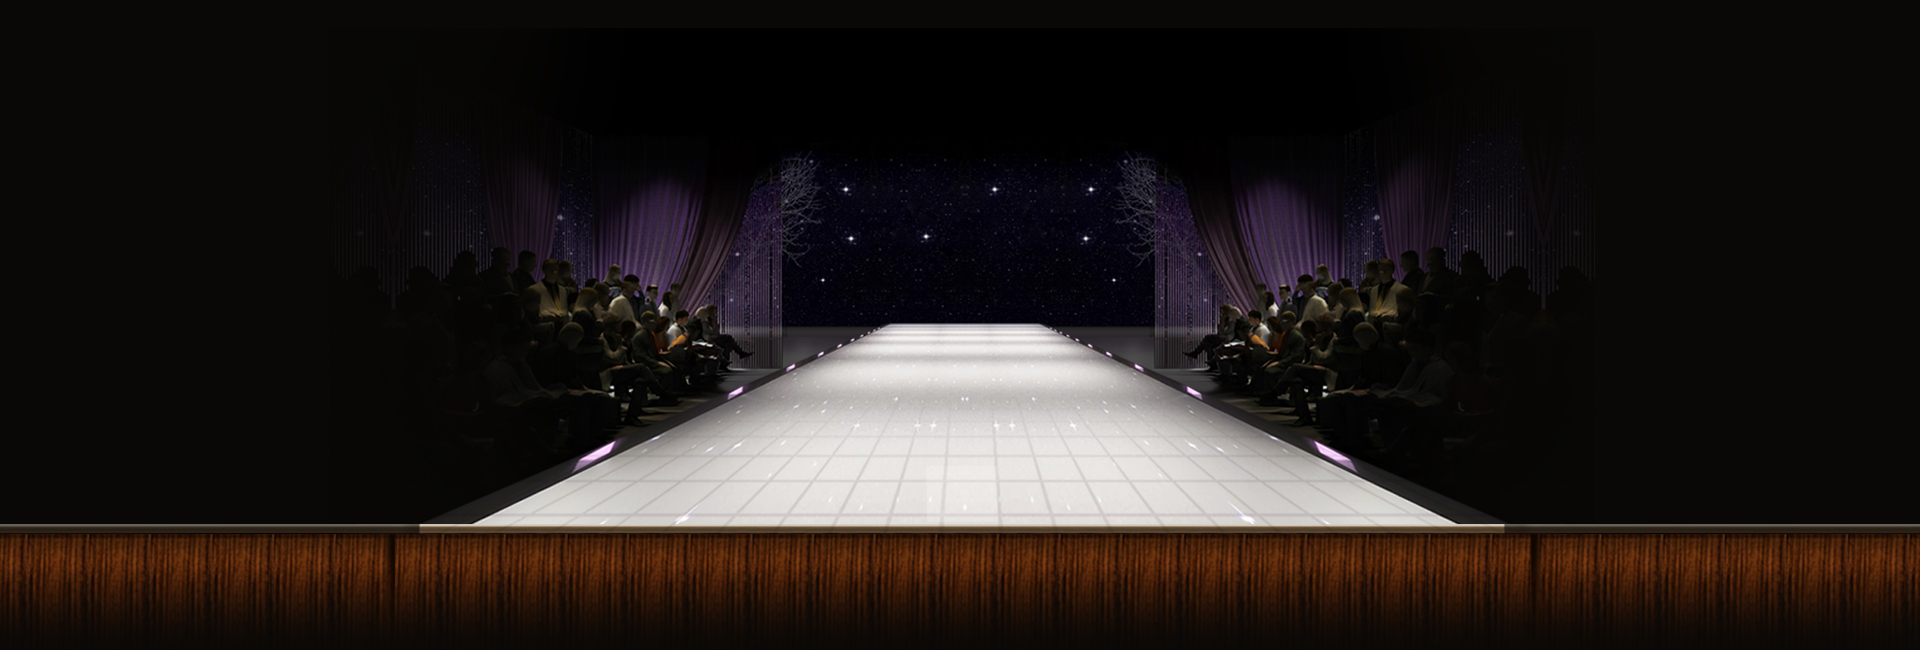 Stage Atmospheric Poster Background Curtain Stage Light